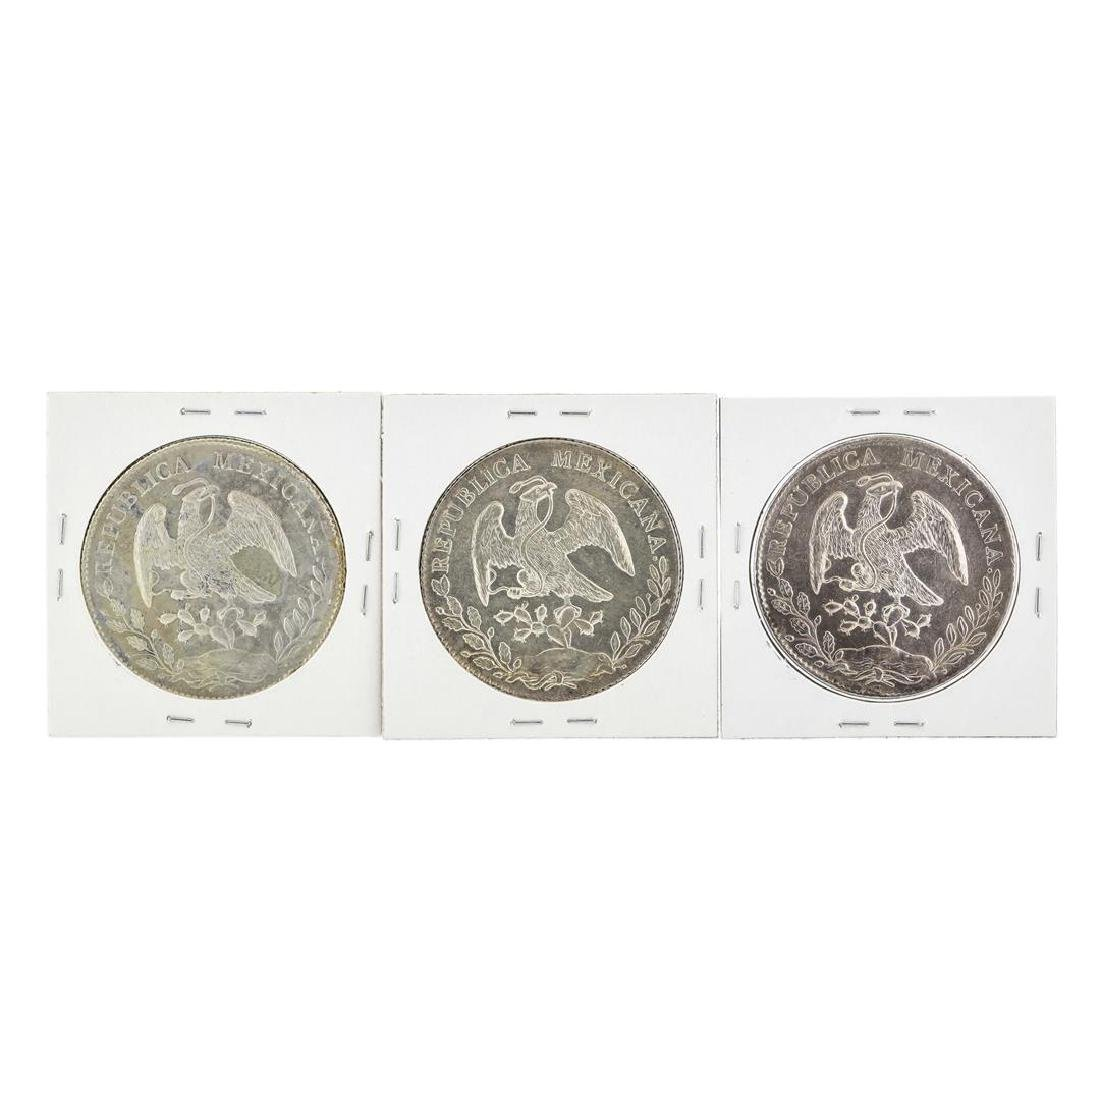 Set of (3) Mexico 8 Reales Silver Coins - 2